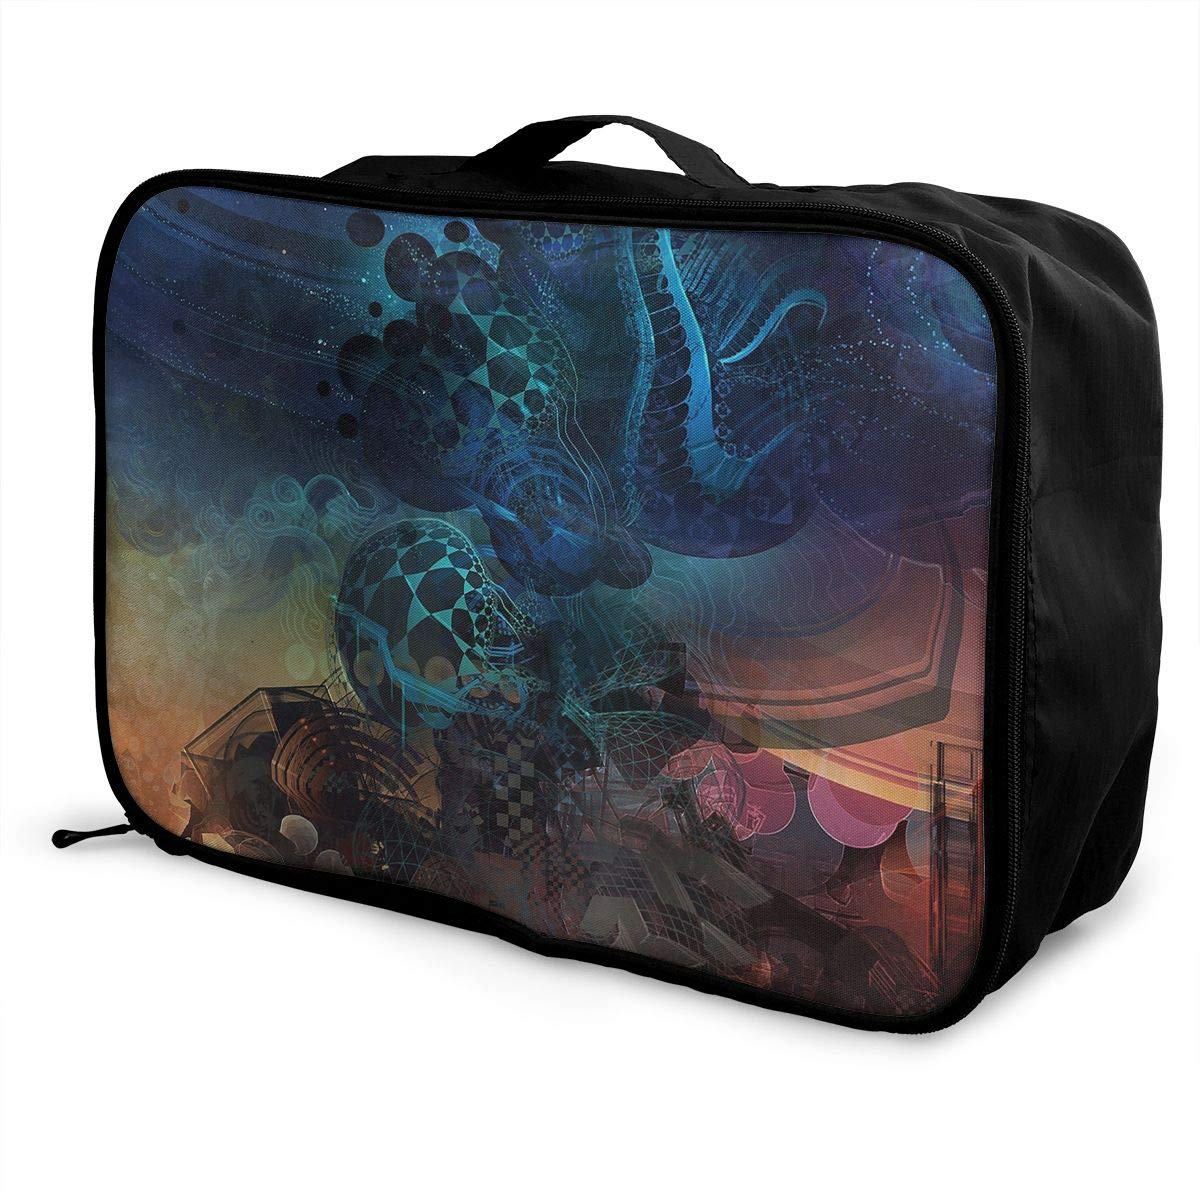 Travel Luggage Duffle Bag Lightweight Portable Handbag Art Abstract Large Capacity Waterproof Foldable Storage Tote